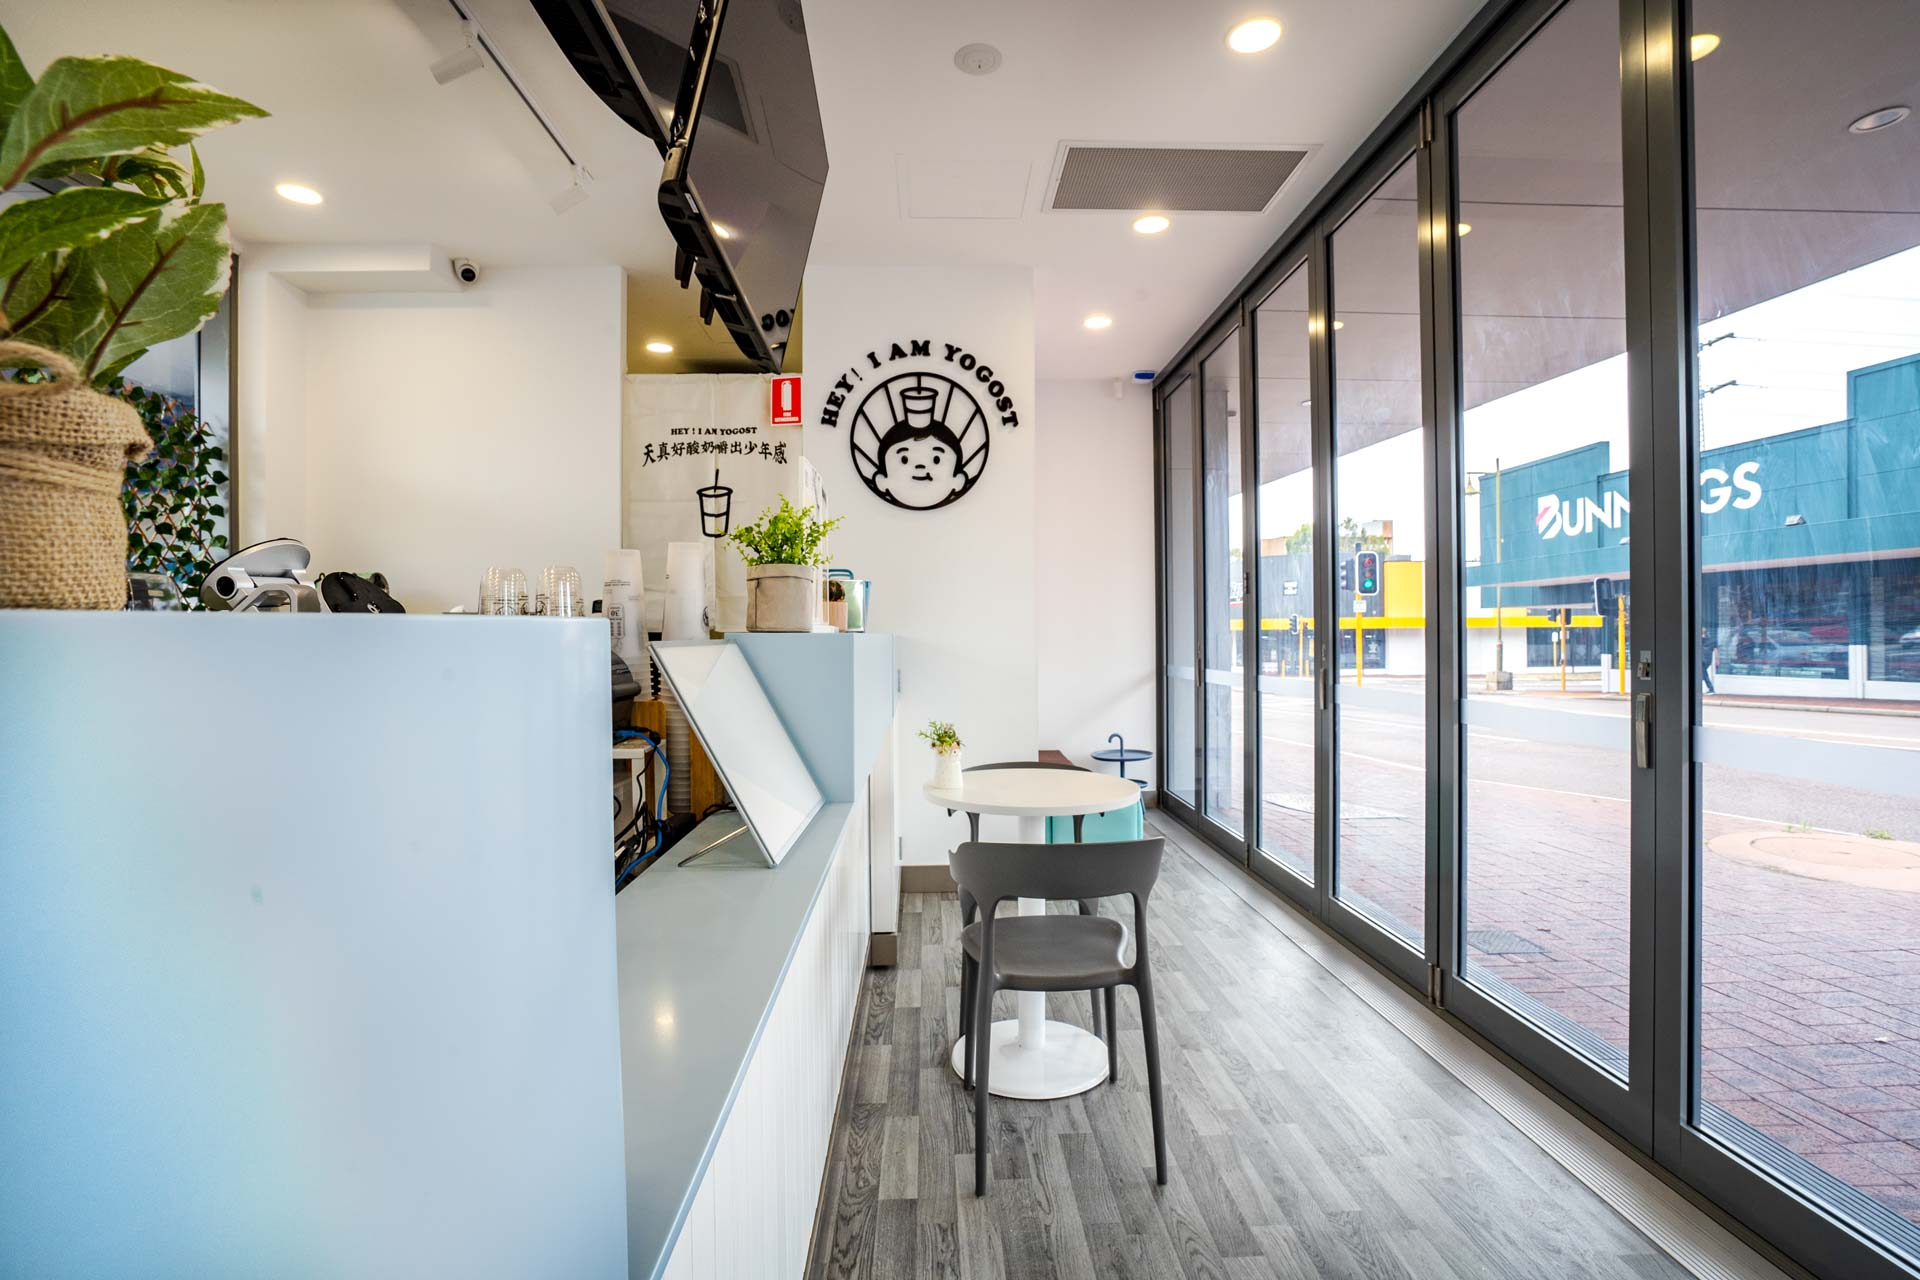 Yogost cafe fitout with wood flooring and bifold doors